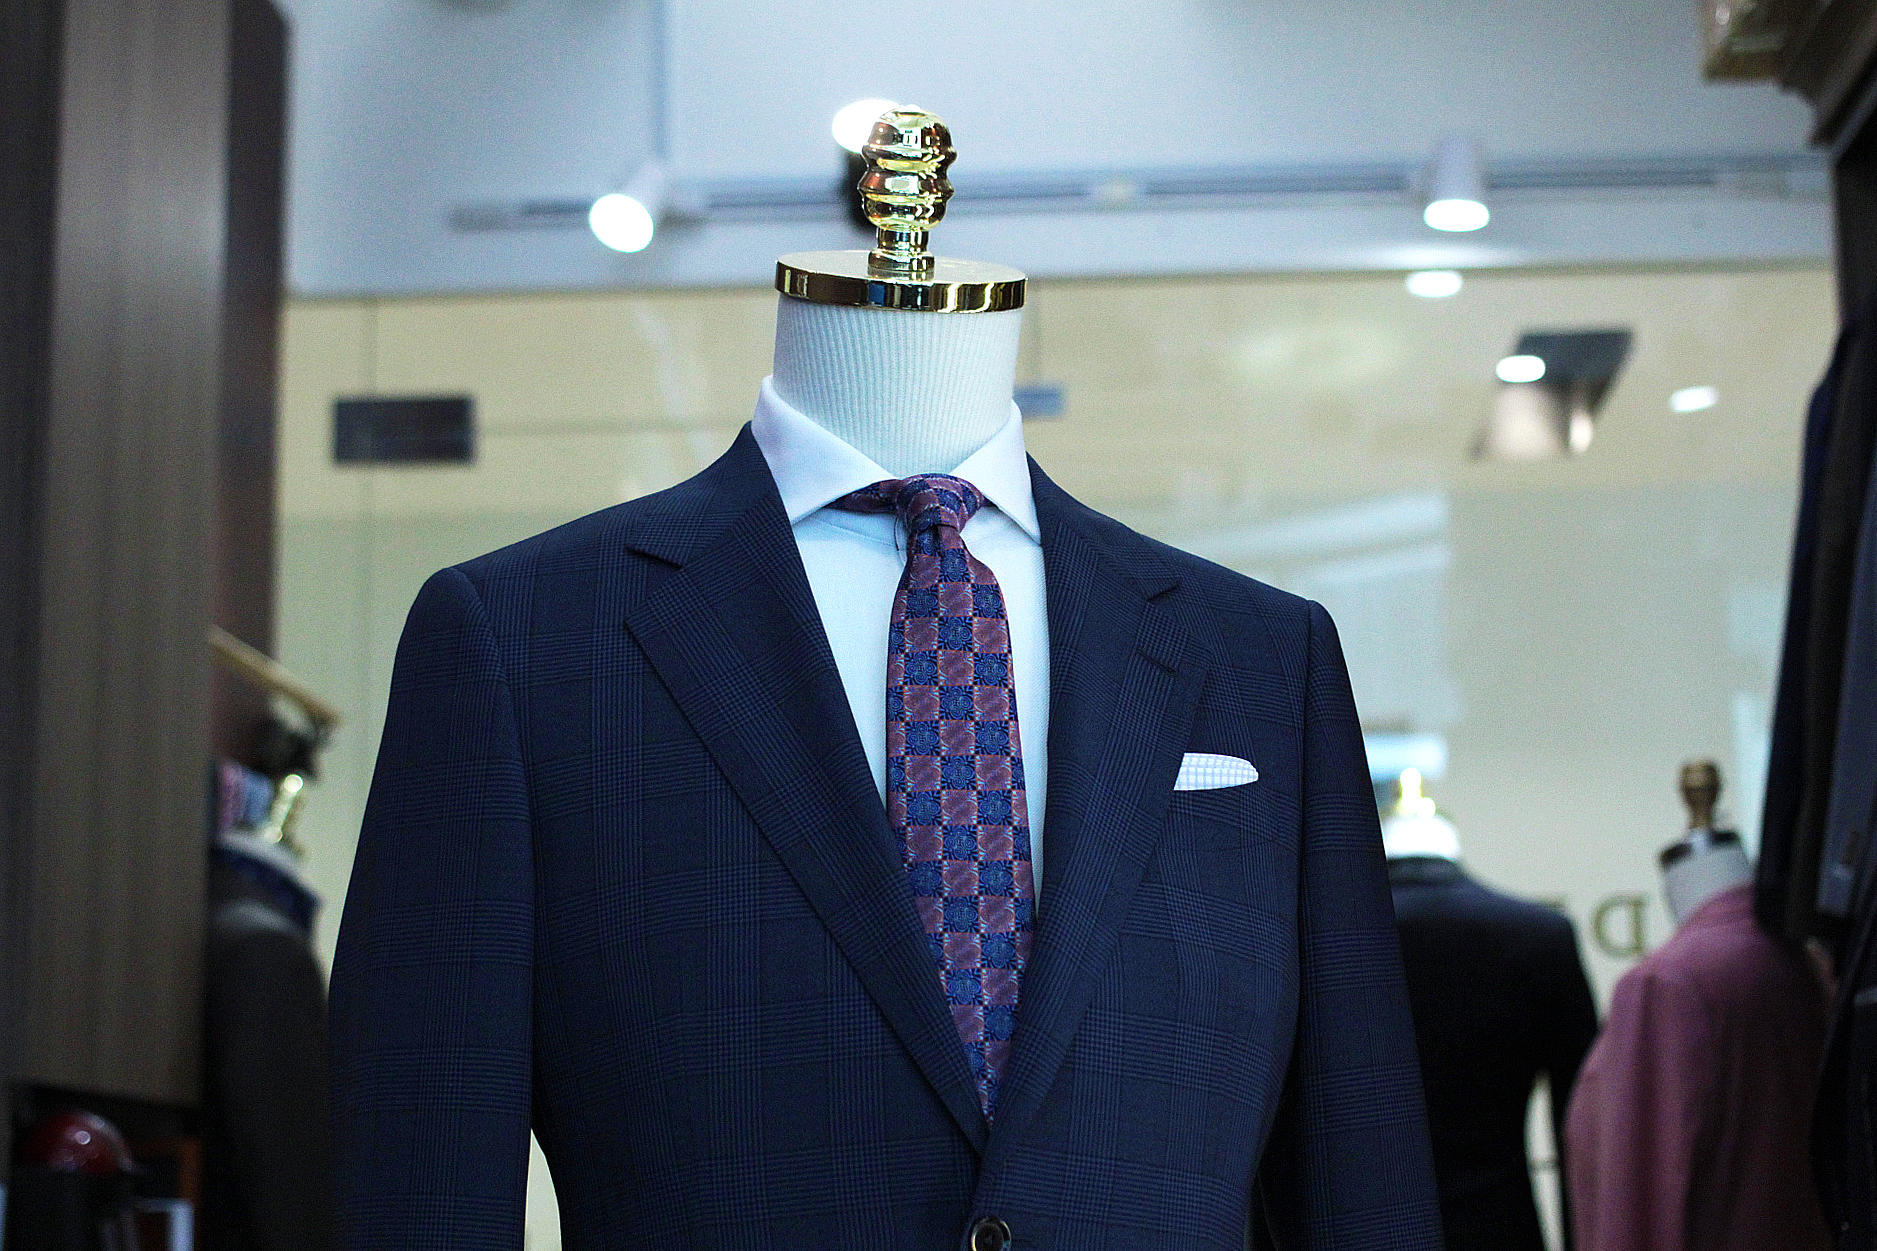 Lins | STYLBIELLA | Single Breasted Suit | Tailor Made Suits Singapore | Bespoke Suits Singapore | Made Suits Front .JPG